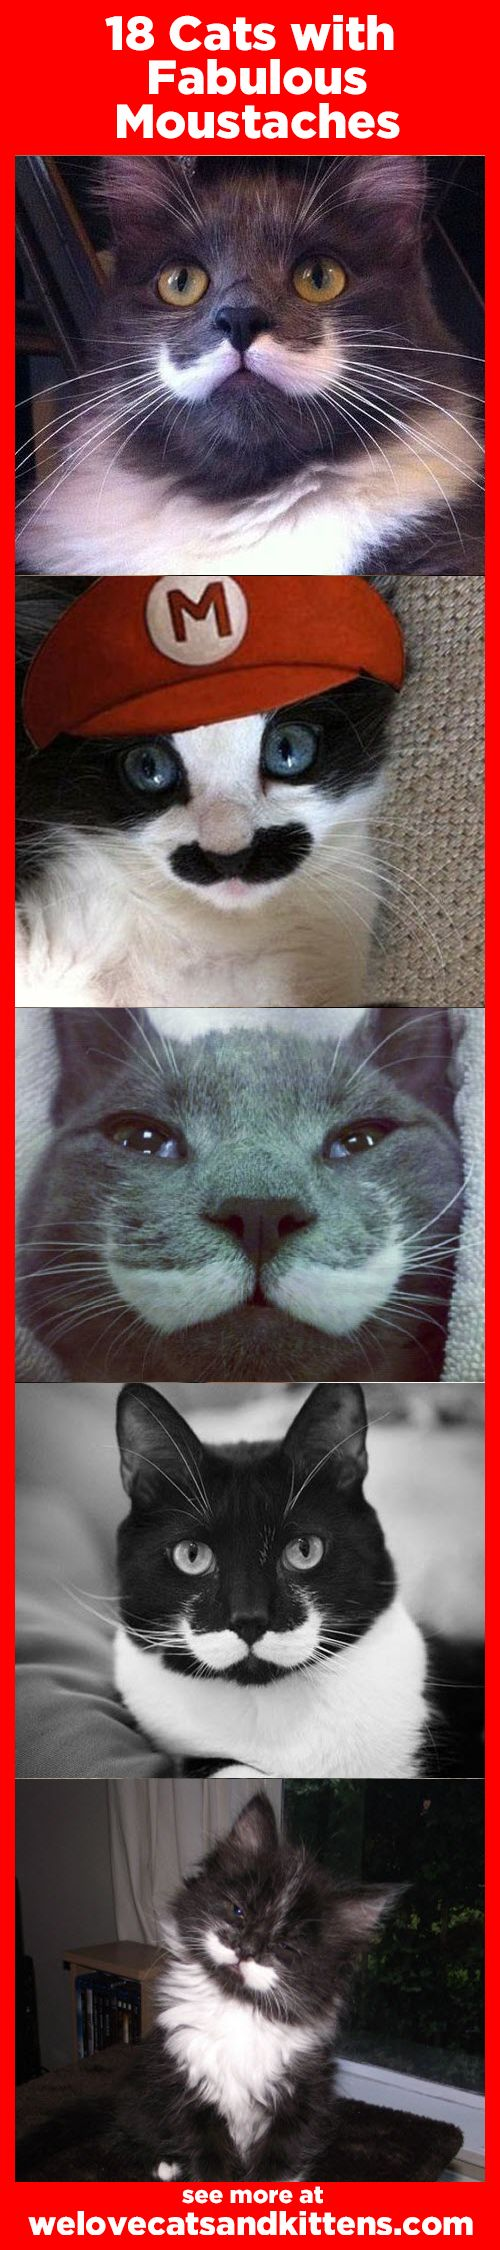 18 cats with fabulous moustaches.